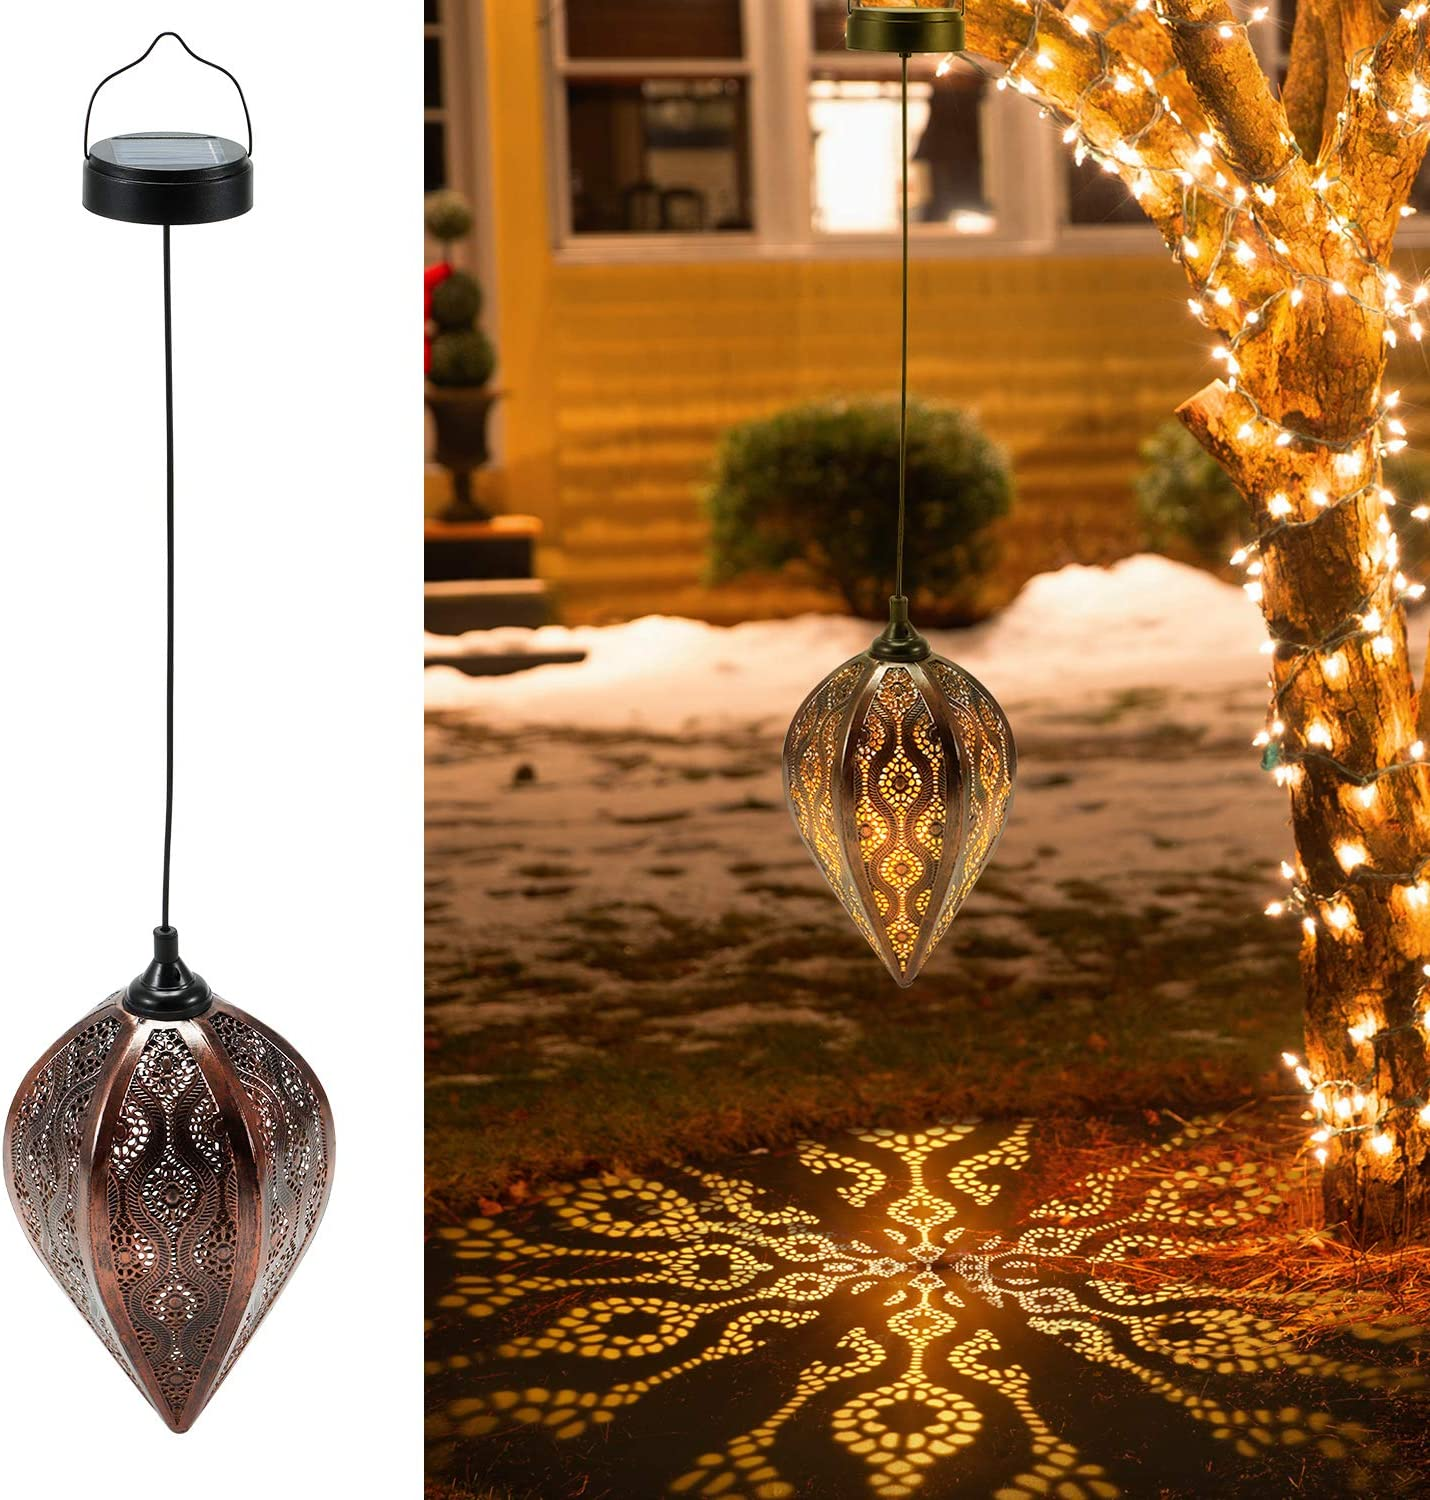 2 Pack Hanging Solar Lanterns, OxyLED Solar Garden Lanterns Outdoor, LED Lanterns Solar Powered Waterproof, Decorative Retro Metal Solar Lights with Handle for Patio Yard Tree Fence Christmas